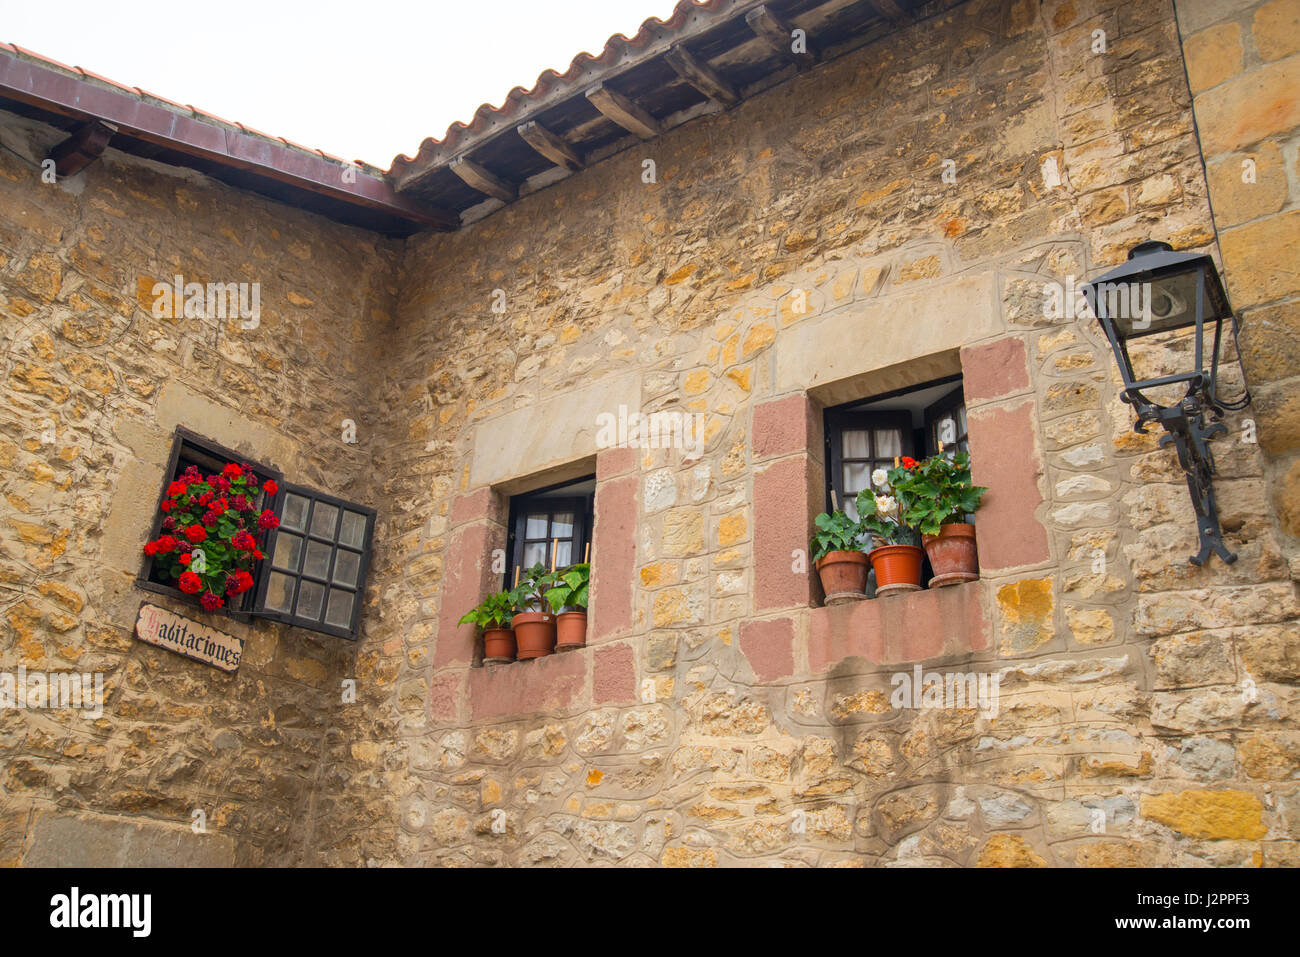 Facade of rural house. Santillana del Mar, Cantabria, Spain. - Stock Image